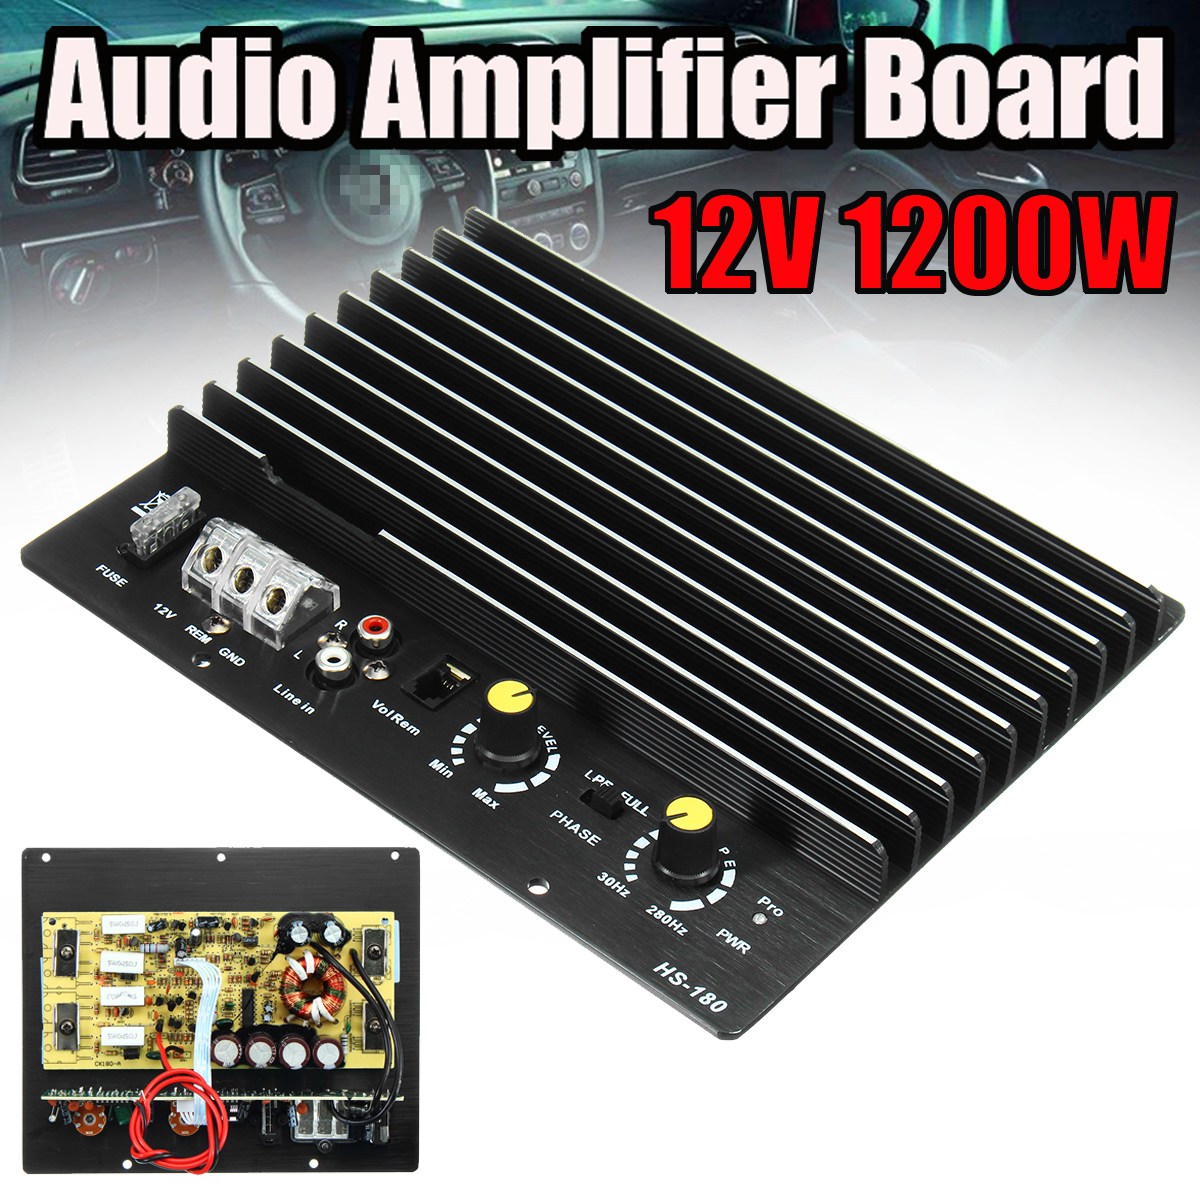 1200W 12V 100A Amplifier Board Mono Car Audio Power Amplifier For 8/10 Inch Speaker yiyelang yh 128 1200w car amplifier audio installation wires cables kit red blue